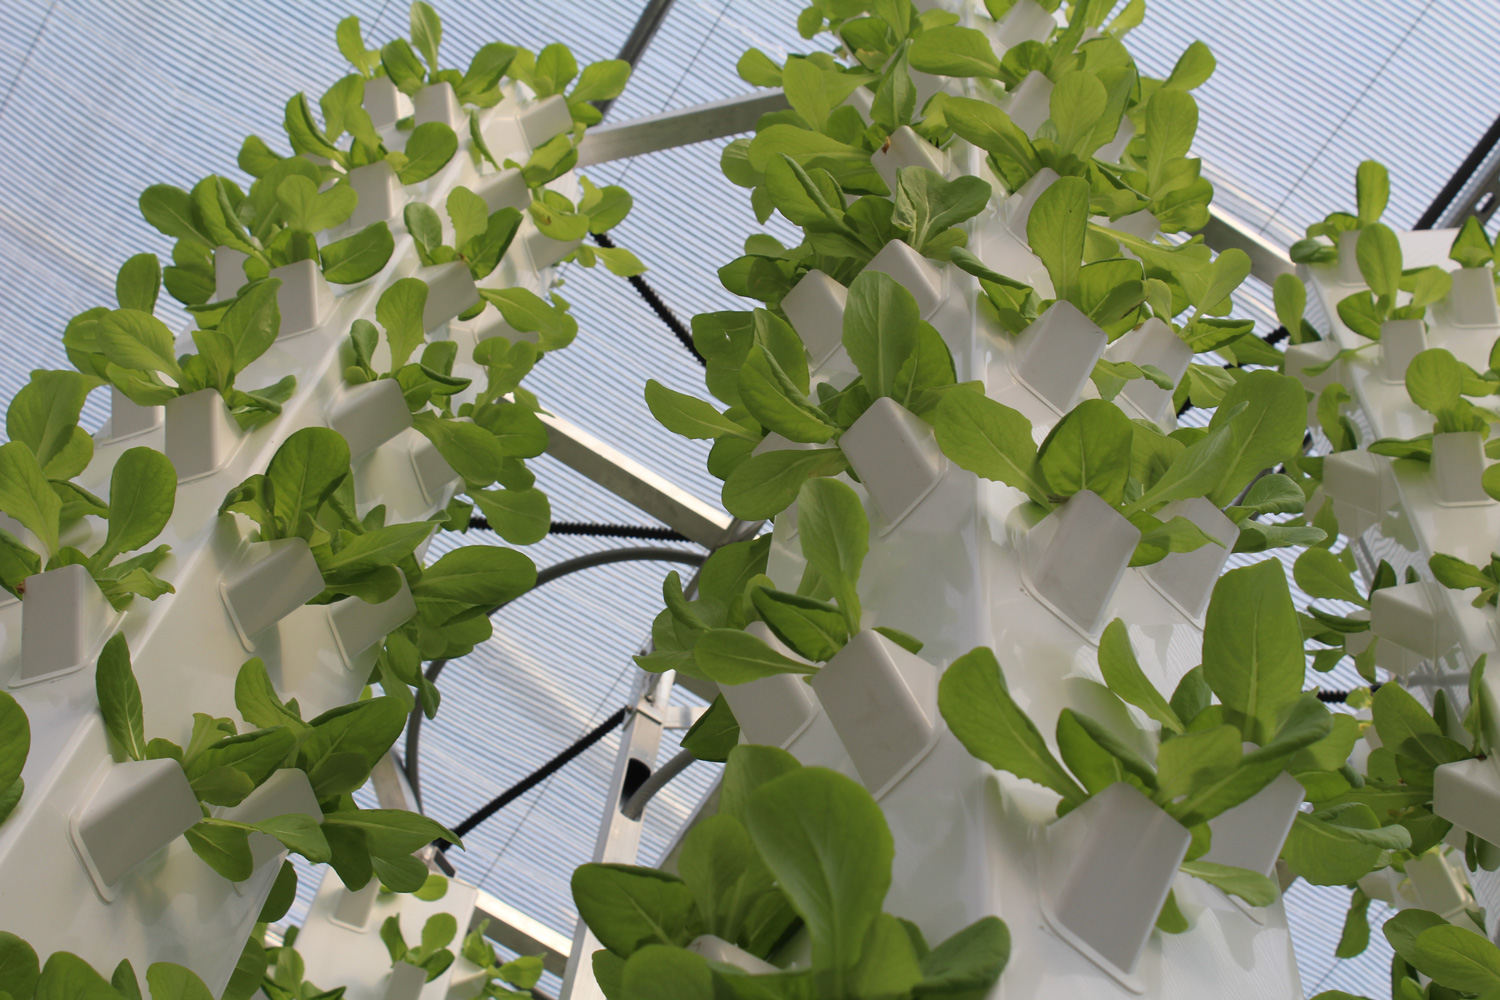 Aeroponic System Brings Year Round Fresh Vegetables To